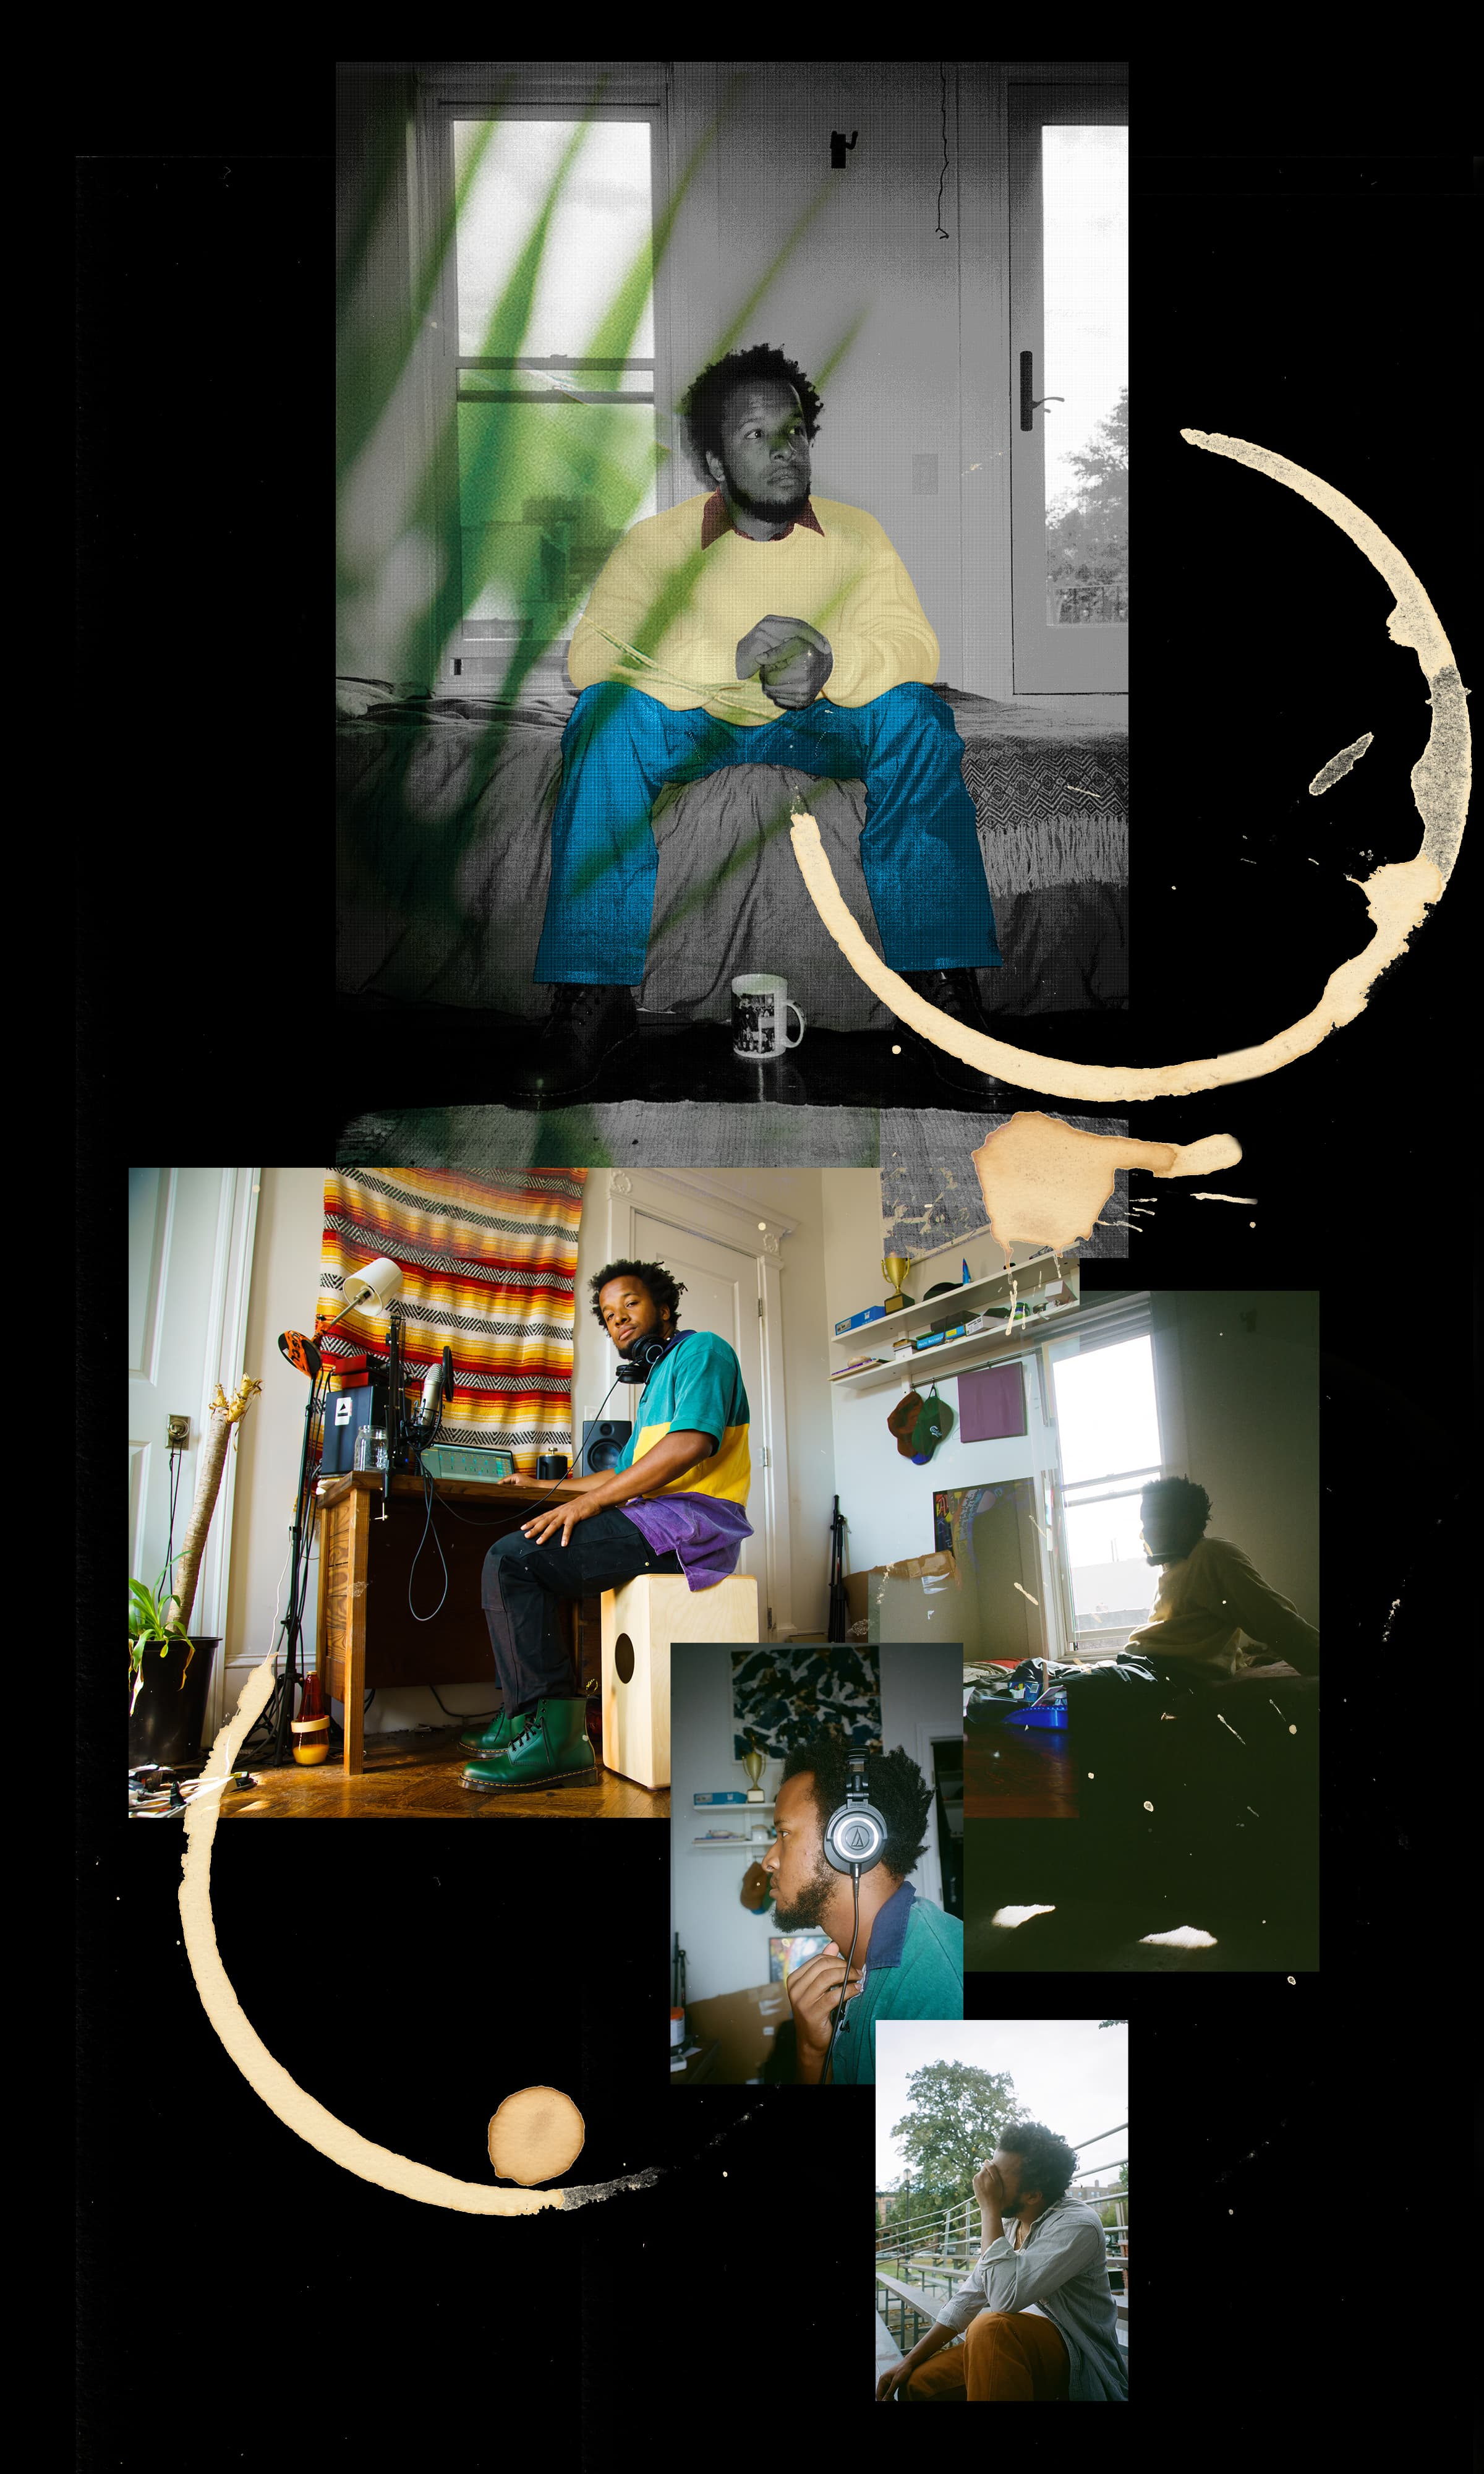 A collage featuring photos of Clay appearing to reflect inward as he records music.